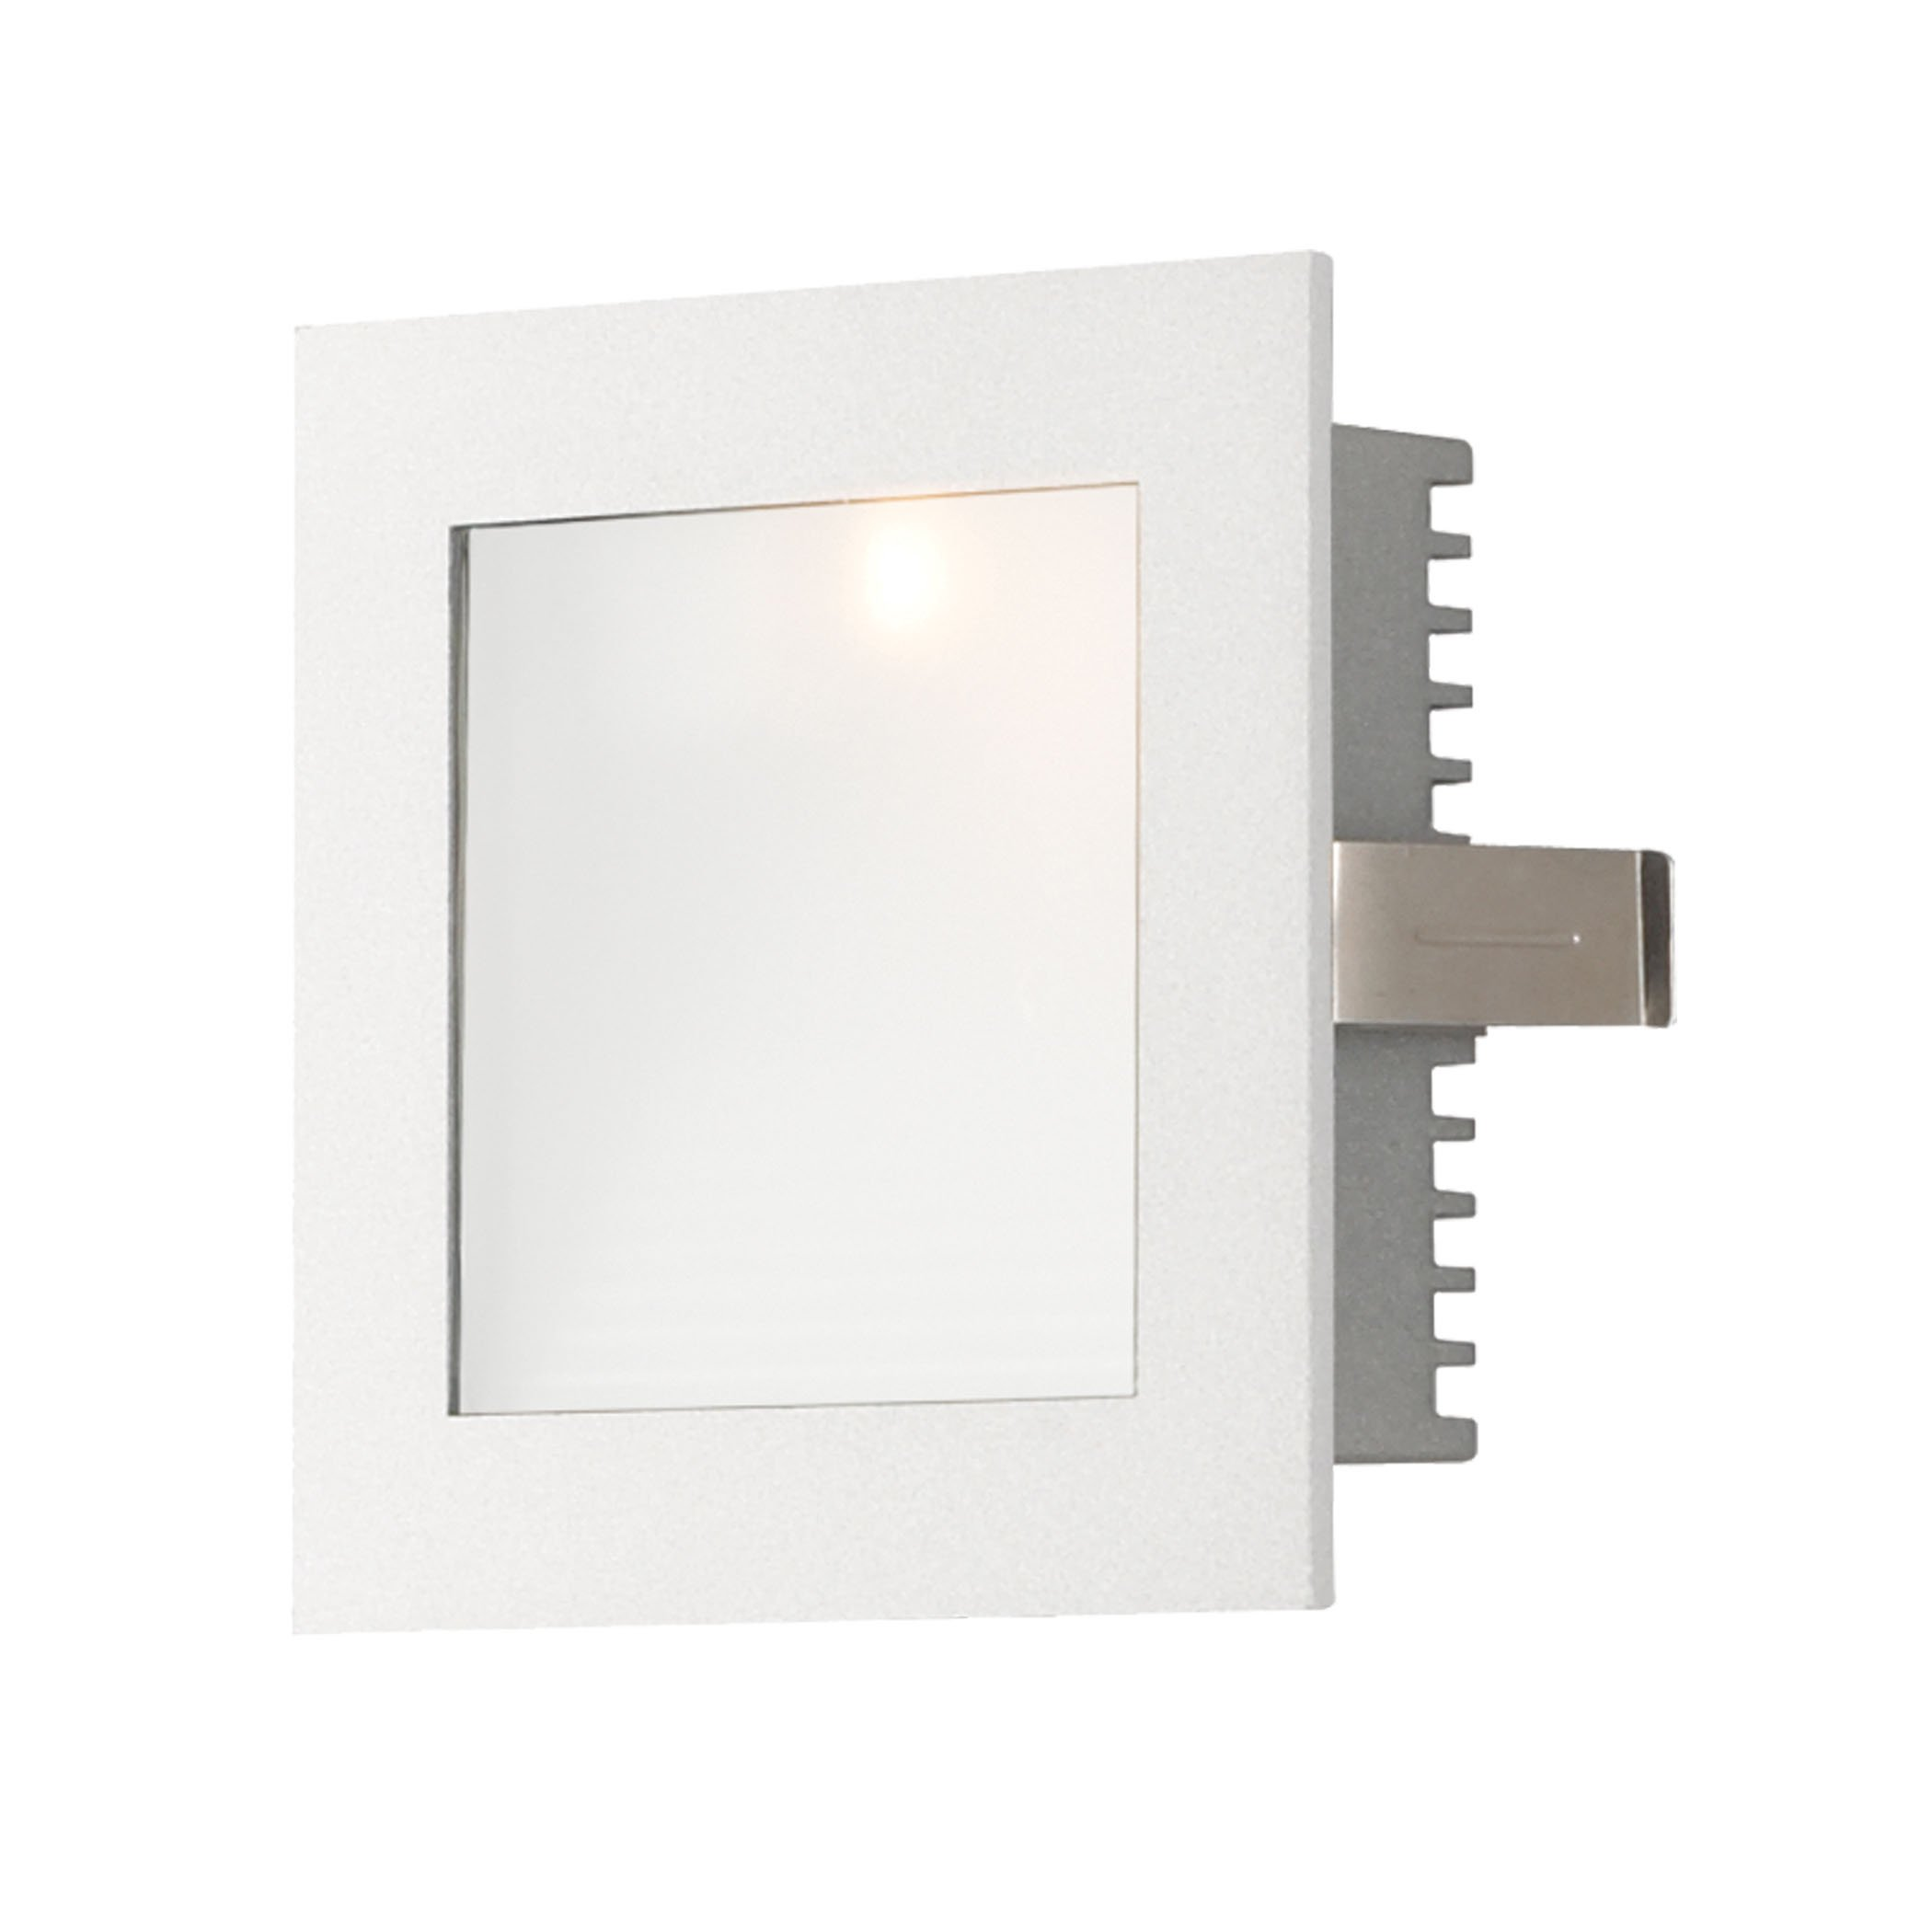 Steplight - Wall Recessed Led Trim For New Construction Housing (Sold Seperatly) Opal Lens / White Trim.